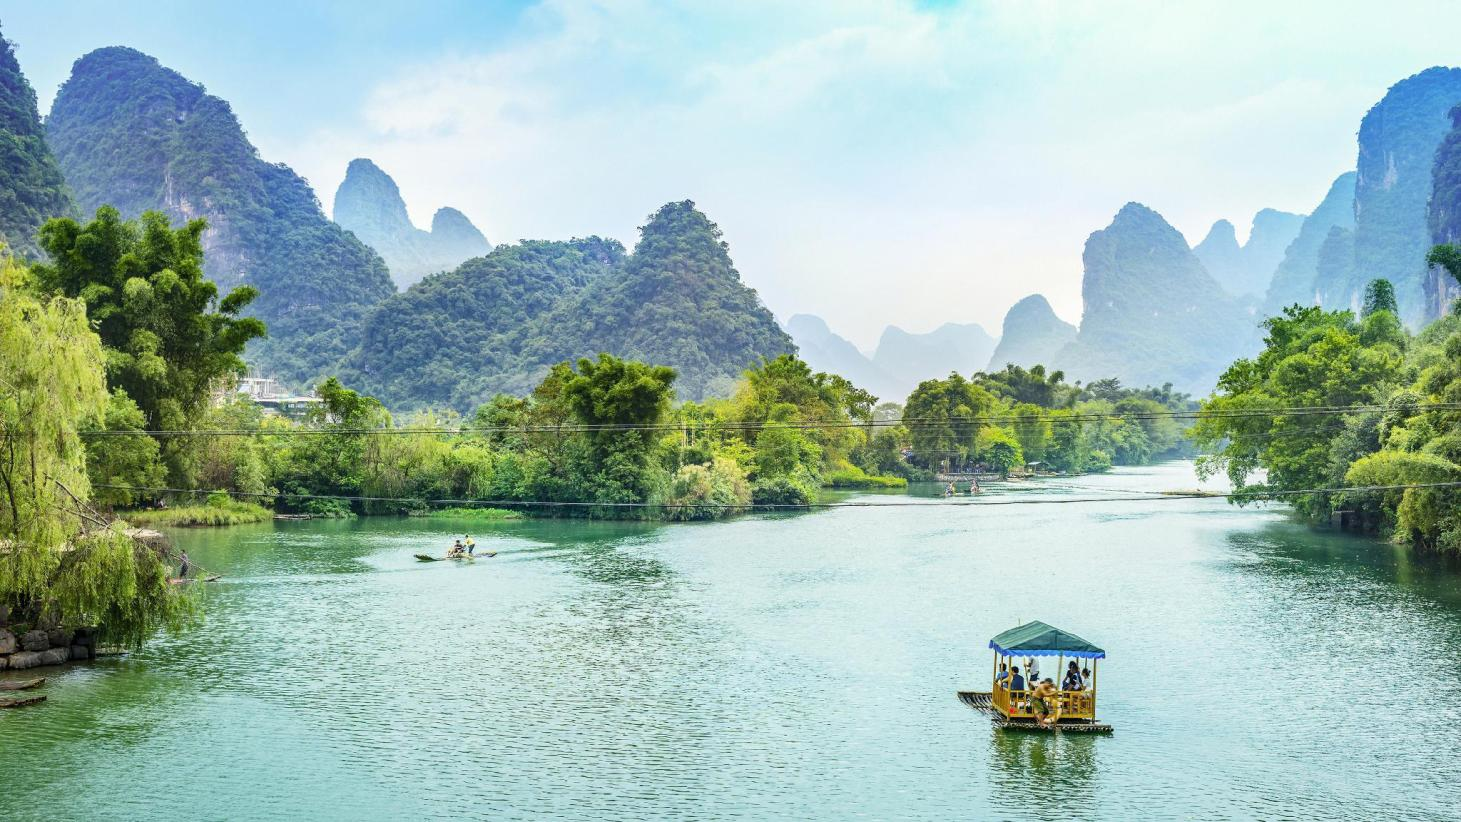 10 Best Guilin Hotels: HD Photos + Reviews of Hotels in Guilin, China